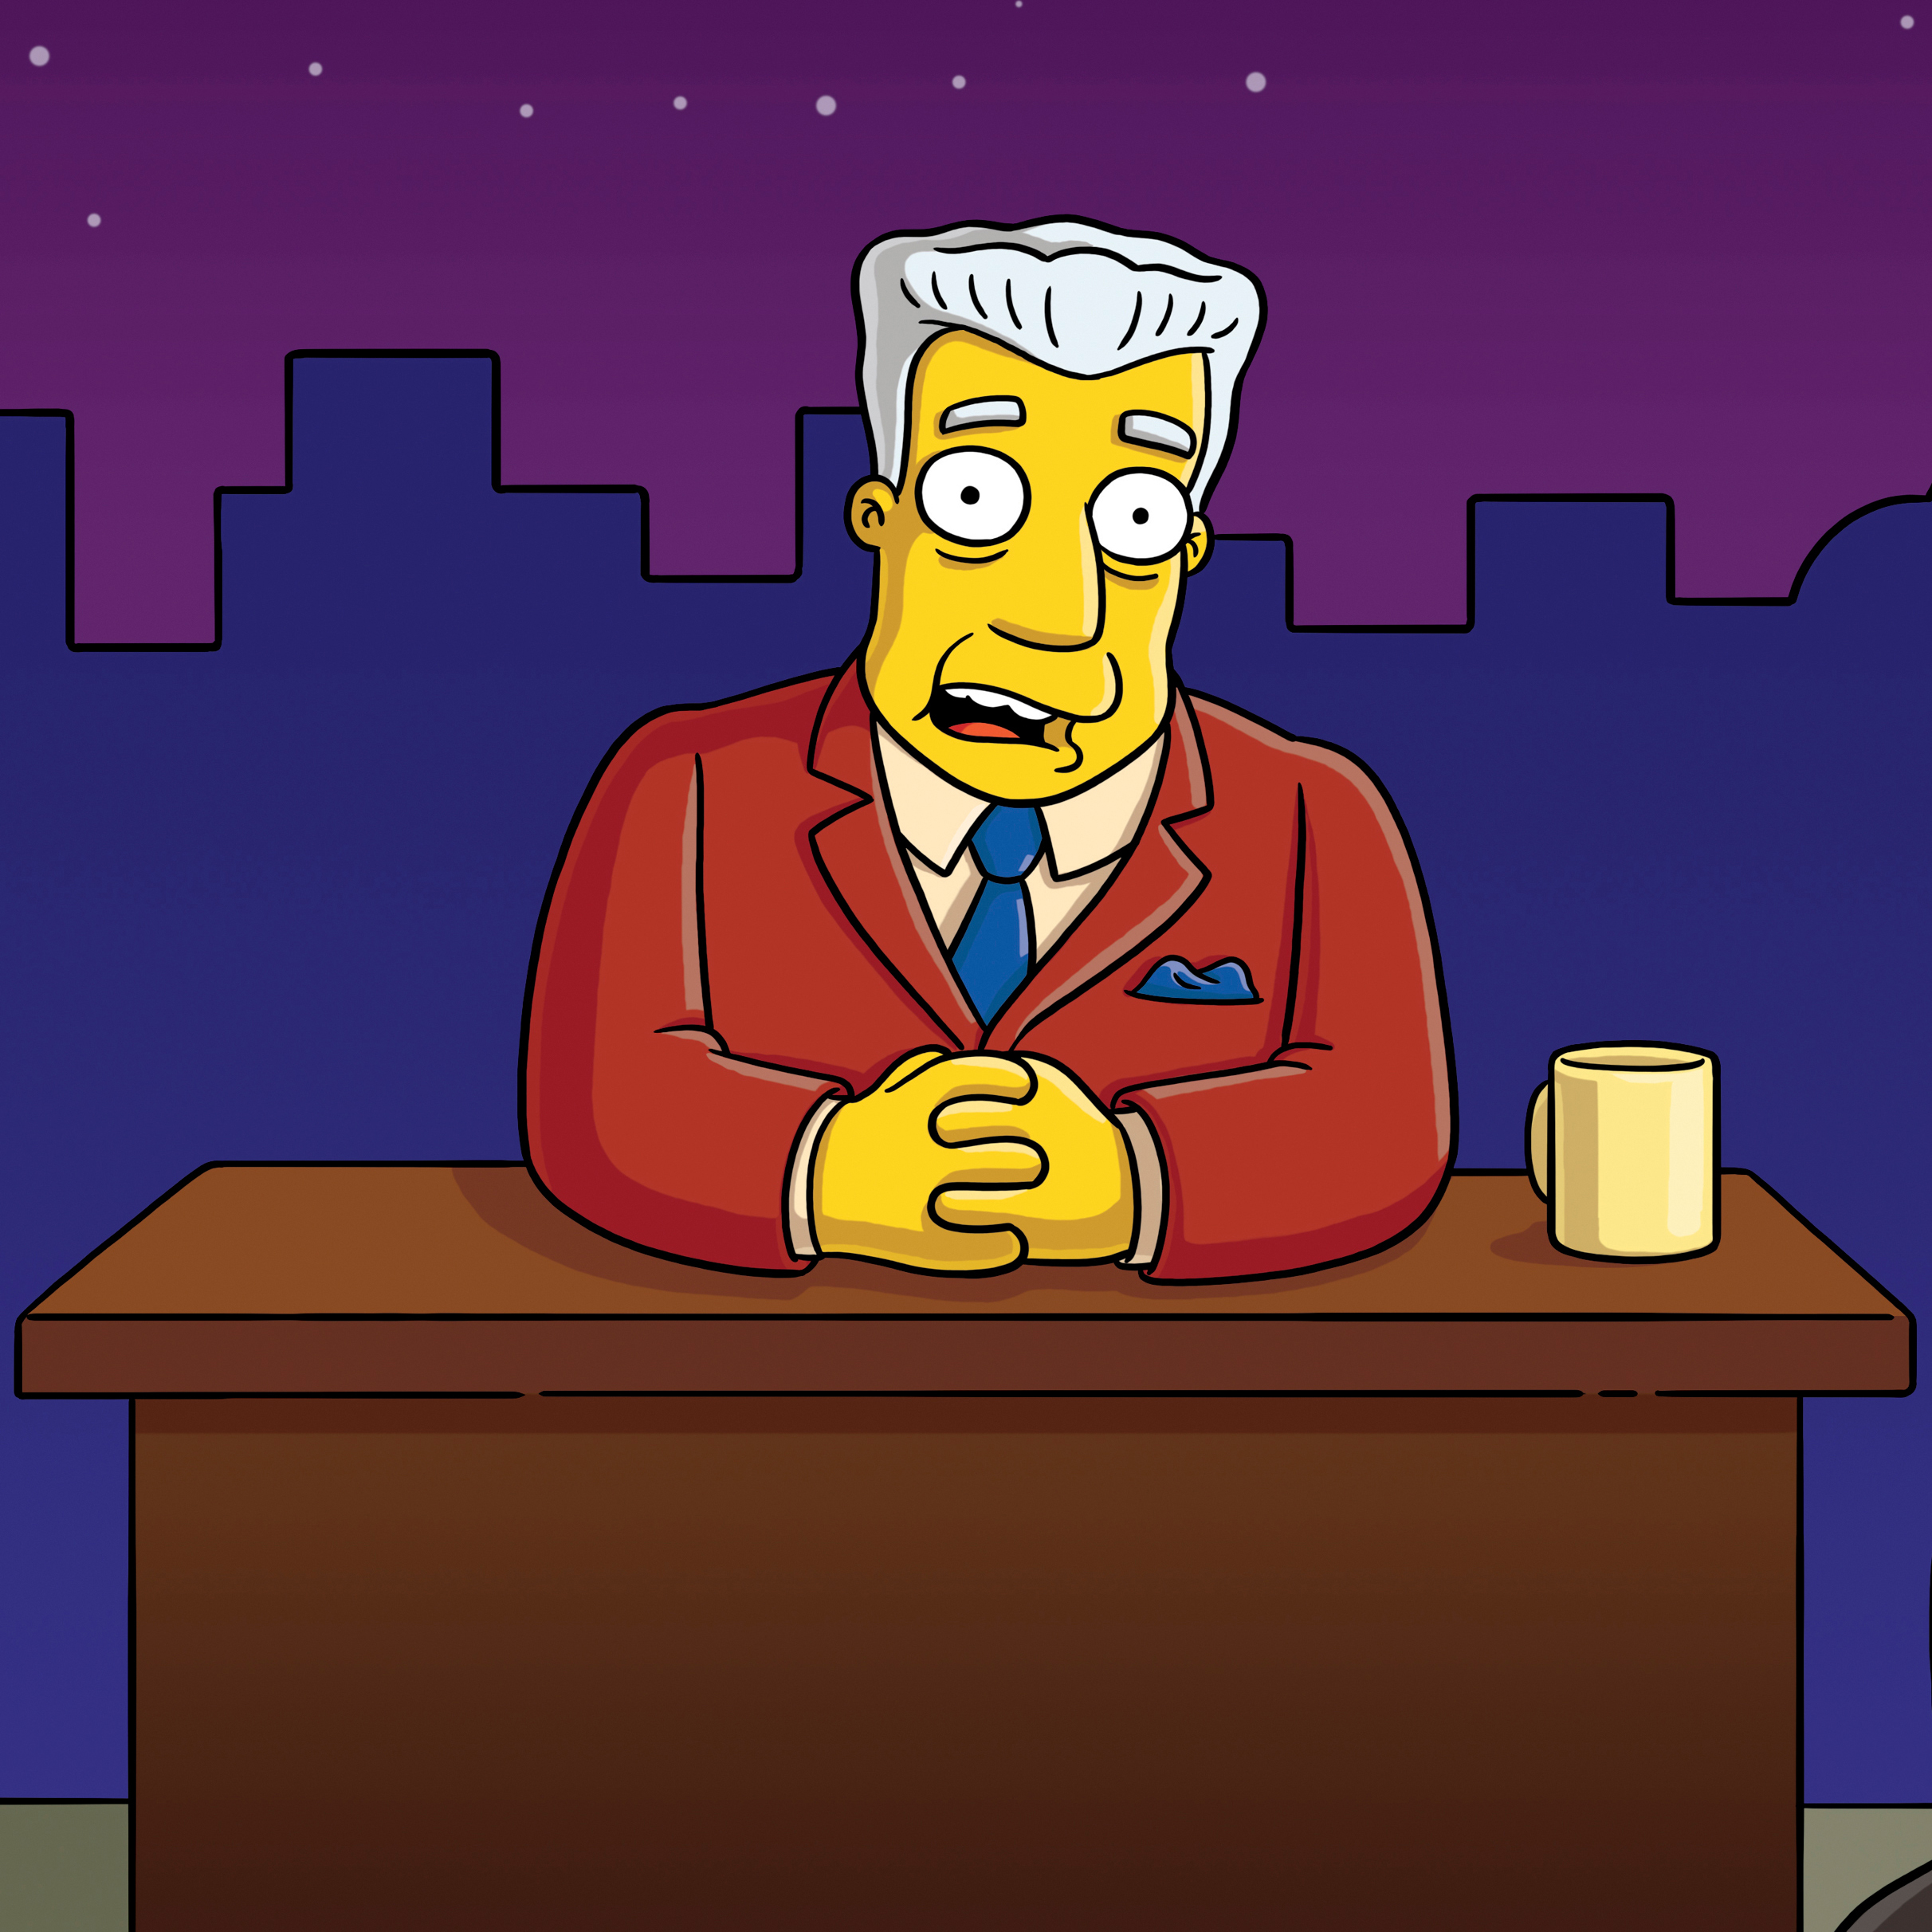 Kent Brockman on THE SIMPSONS